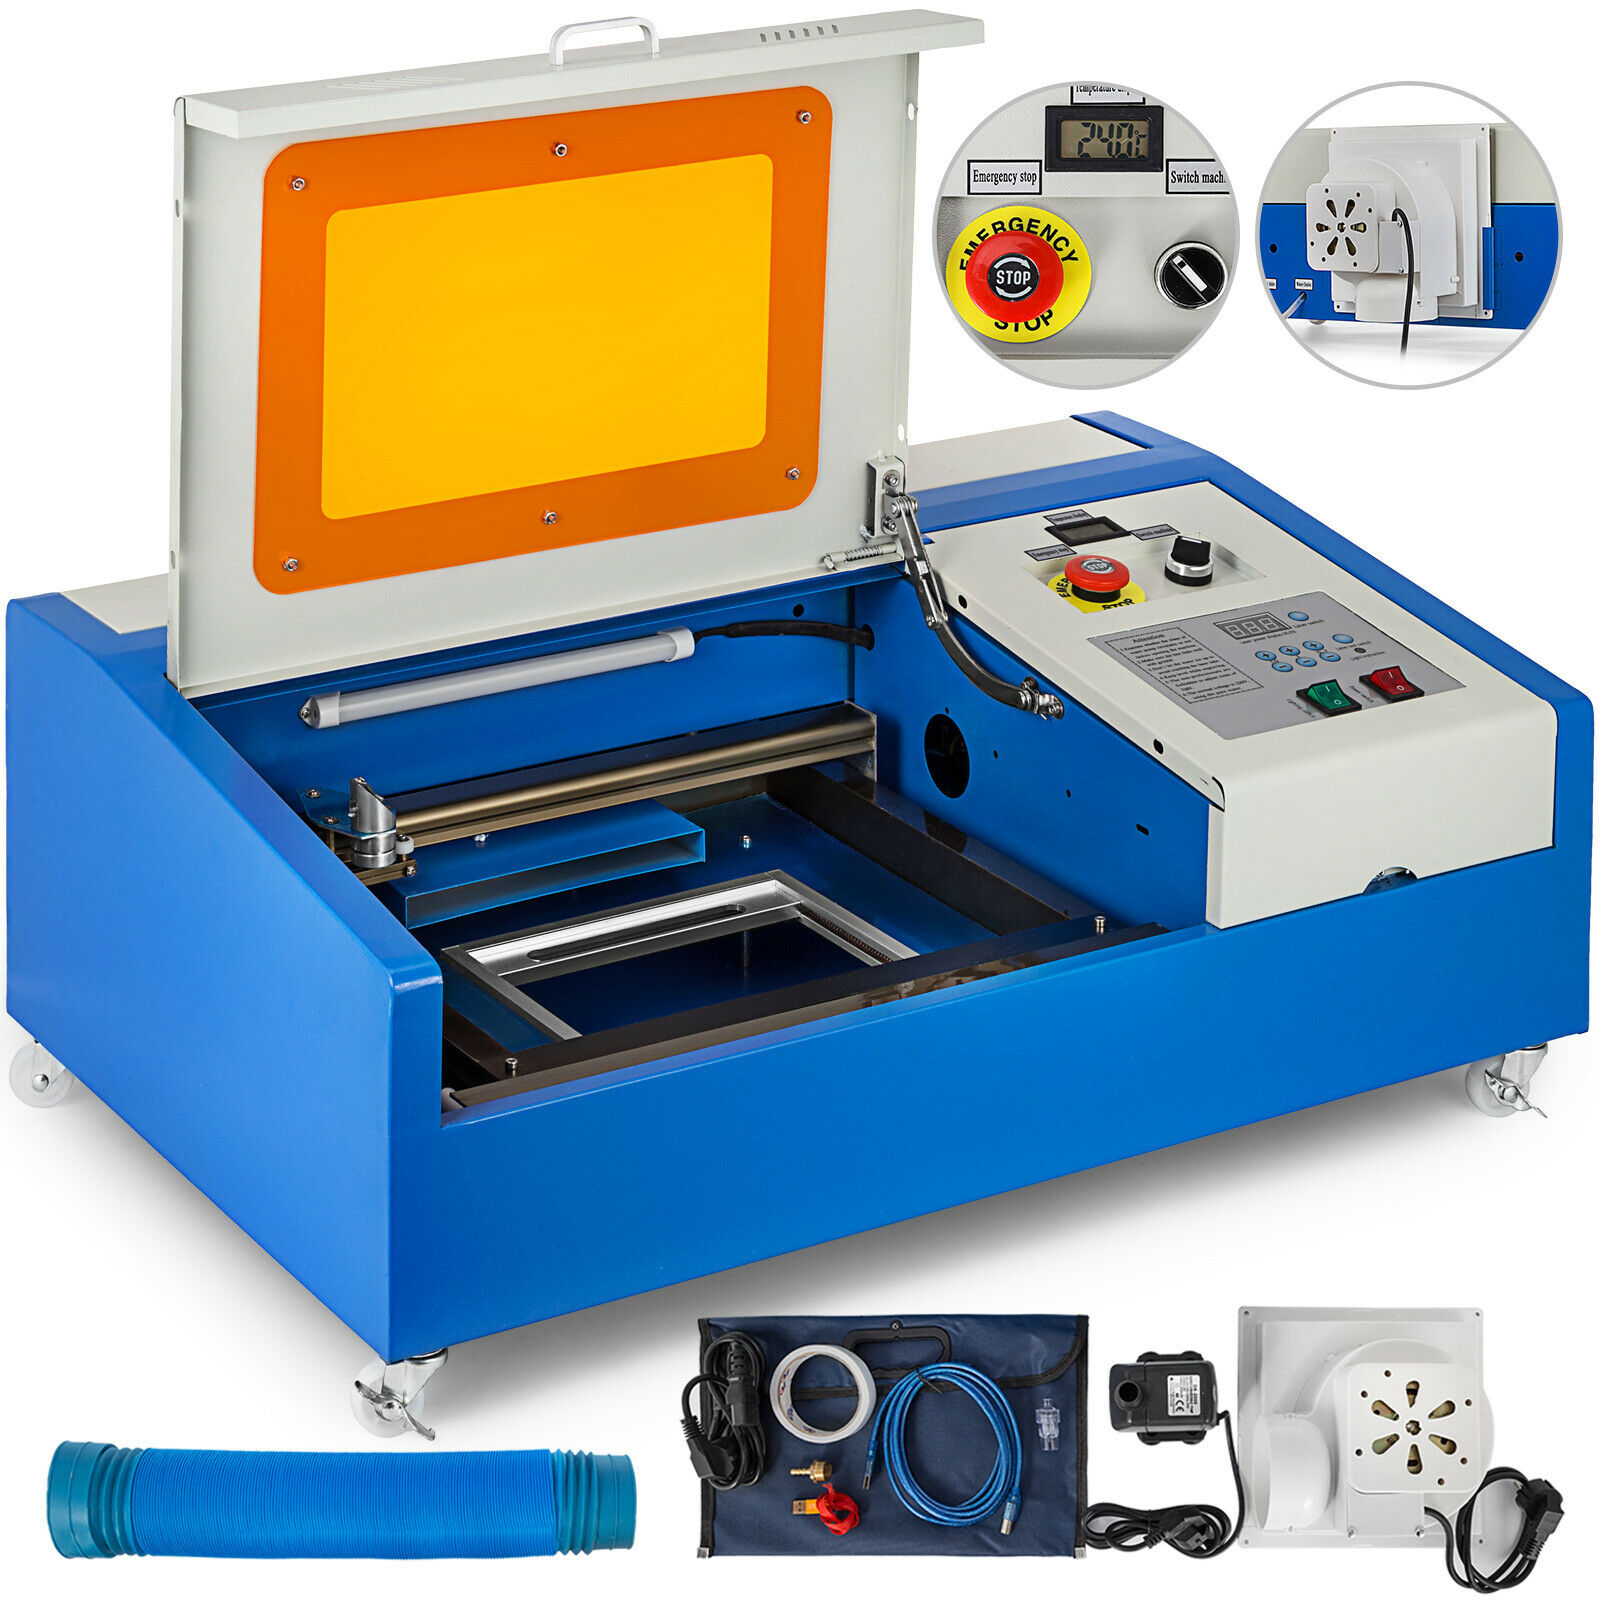 40W Laser Engraver Machine Electric Powerful Dremel CO2 Cutting Machine Engraving Precise Cutter USB Port To Computer